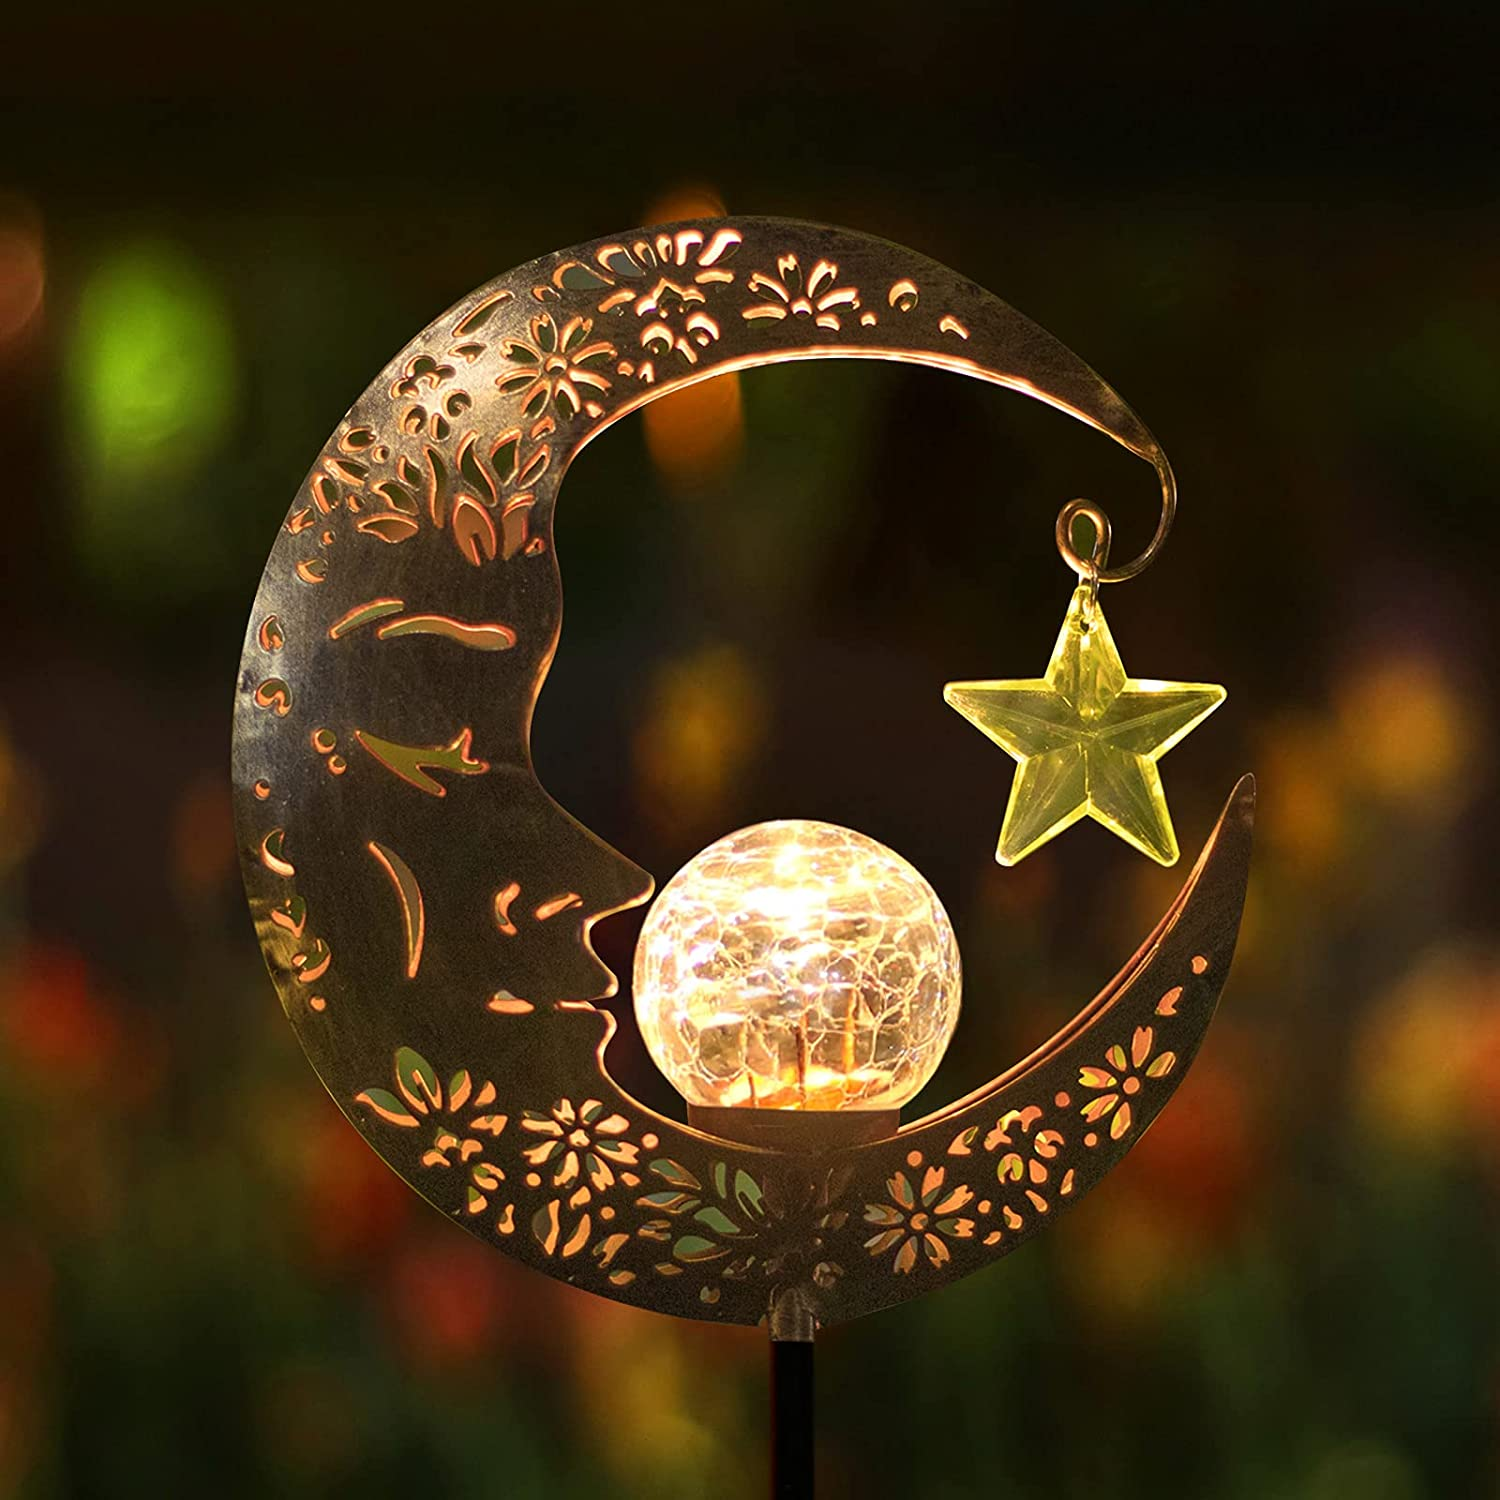 Hapjoy Outdoor Solar Lights Garden Decor for Patio,Lawn or Pathway Moon Decorations Crackle Glass Globe Stake Metal Lights Waterproof Warm LED Garden Gifts (Bronze)